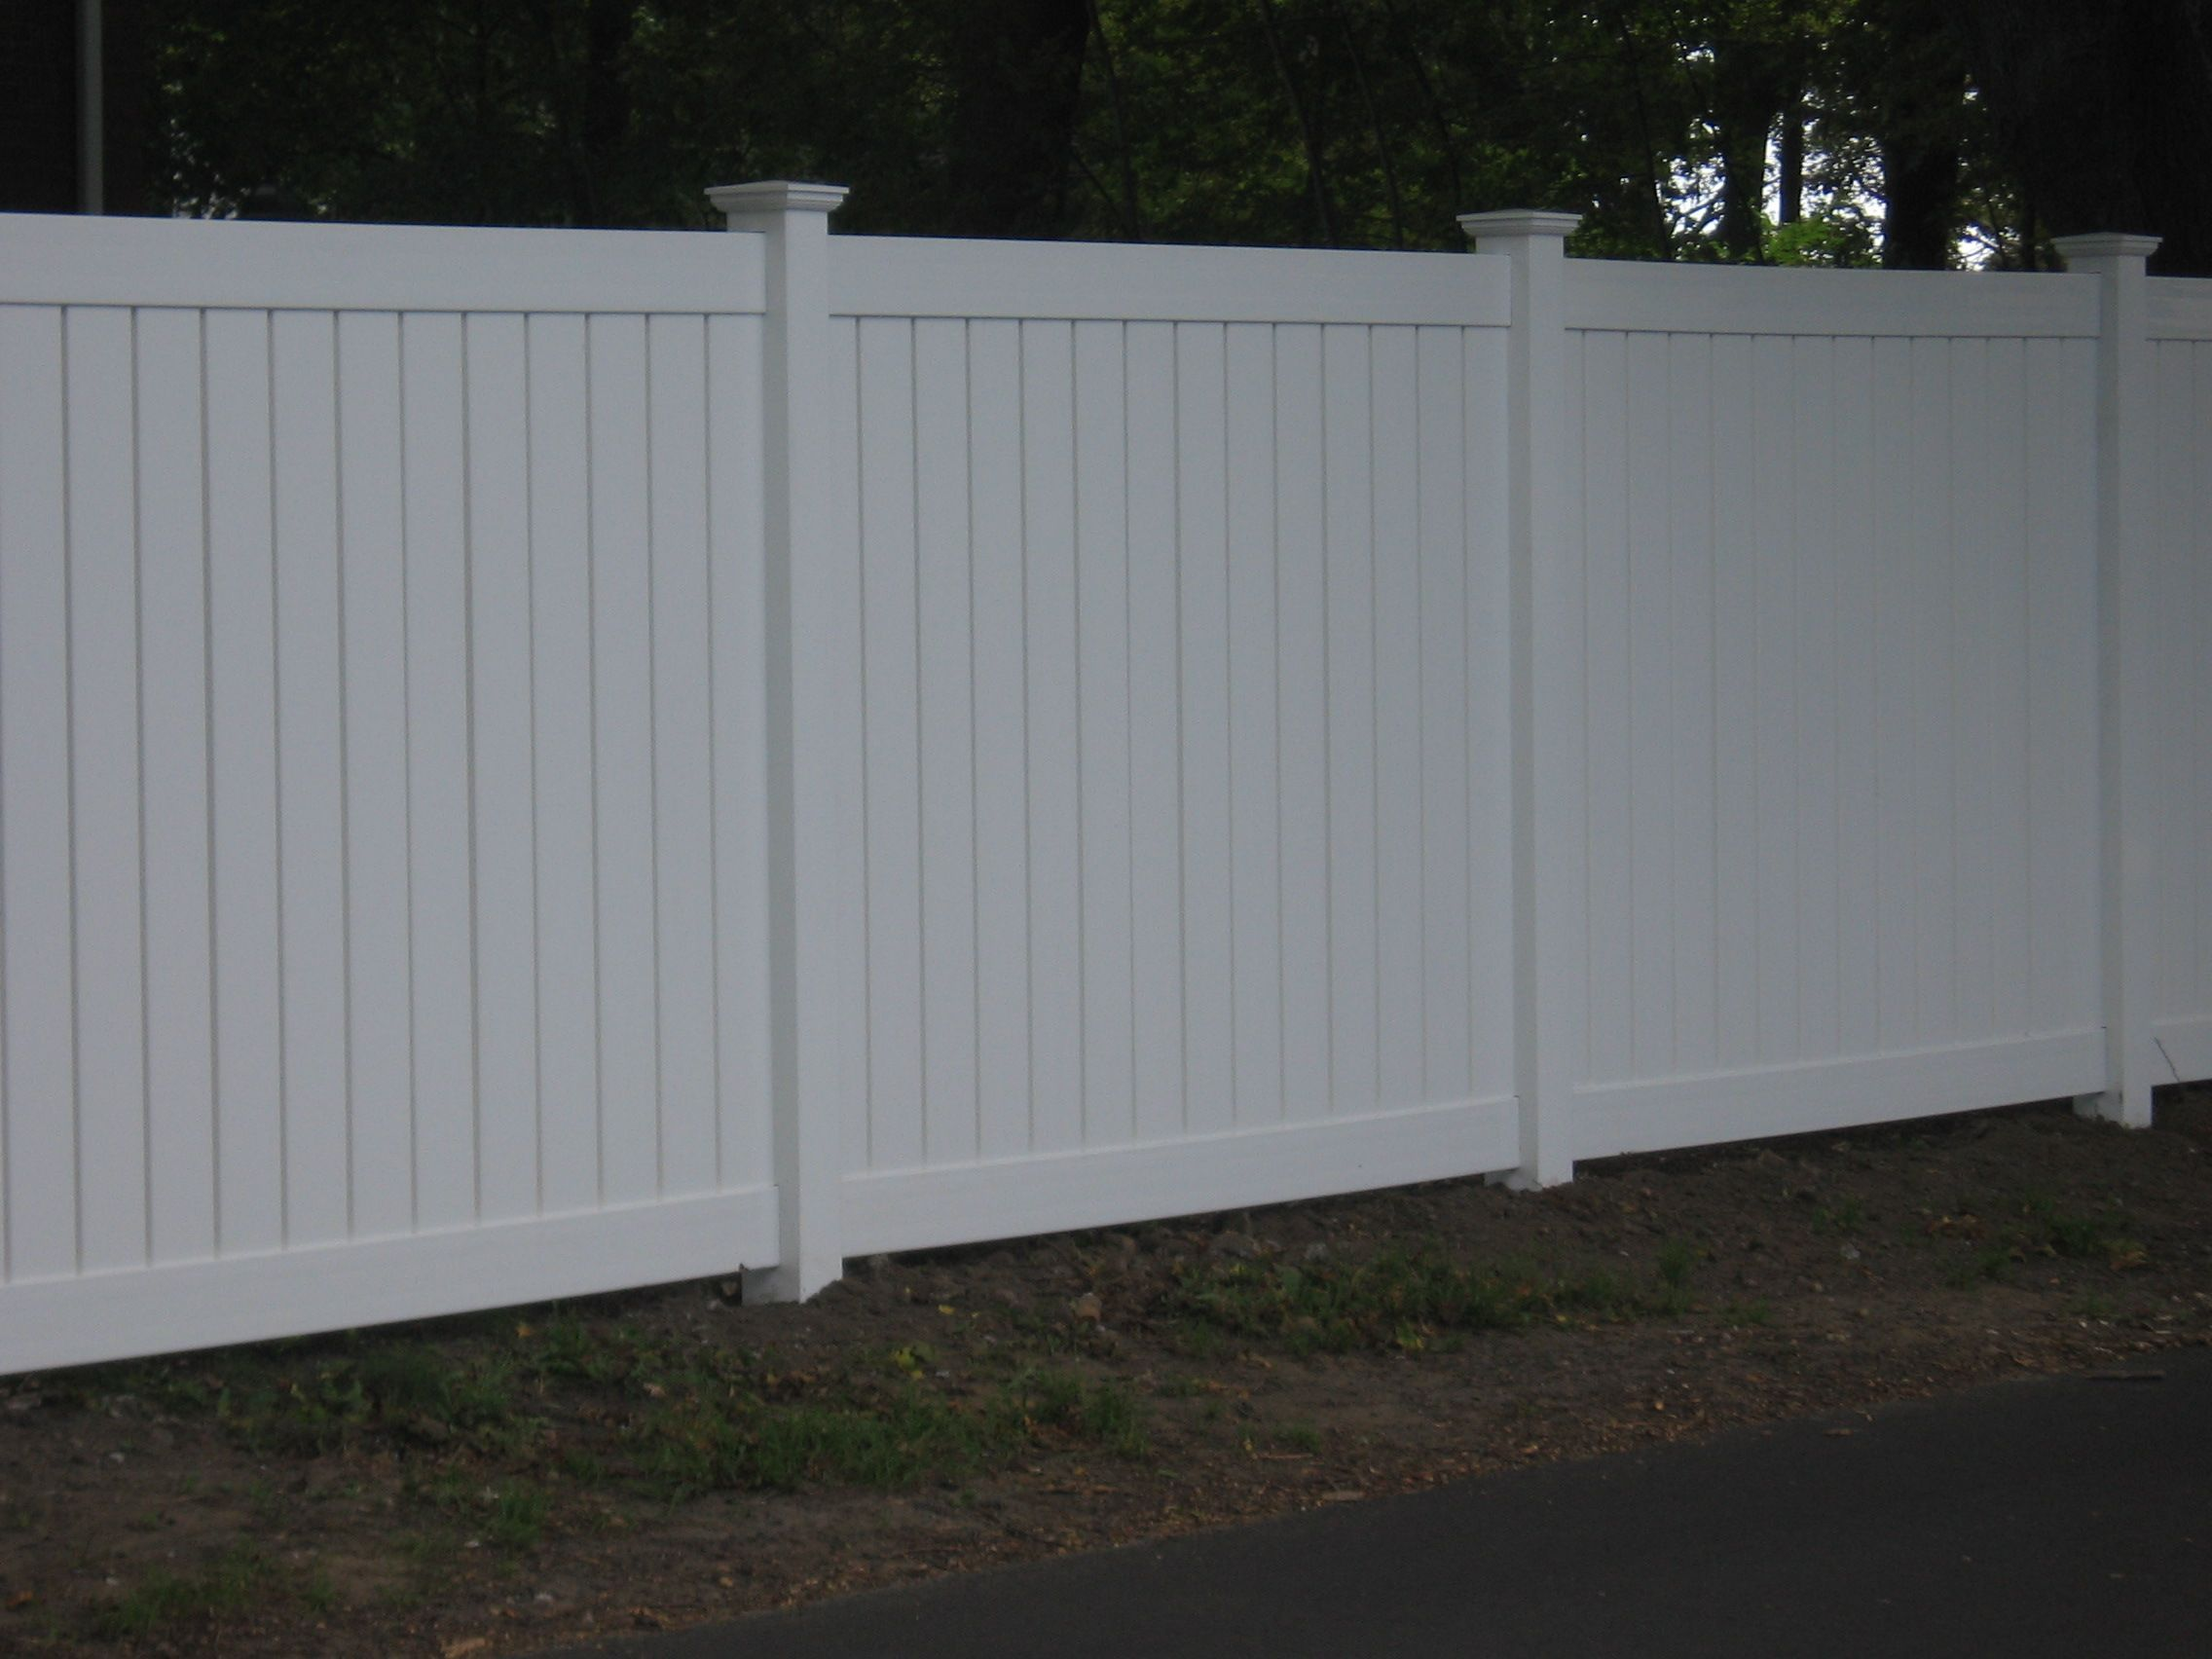 4 Impressive Tips Front Yard Fence Horizontal Vinyl Fence Pool White Split Rail Fence Fence Colours House Fence Photo Fence Design Backyard Fences Fence Decor